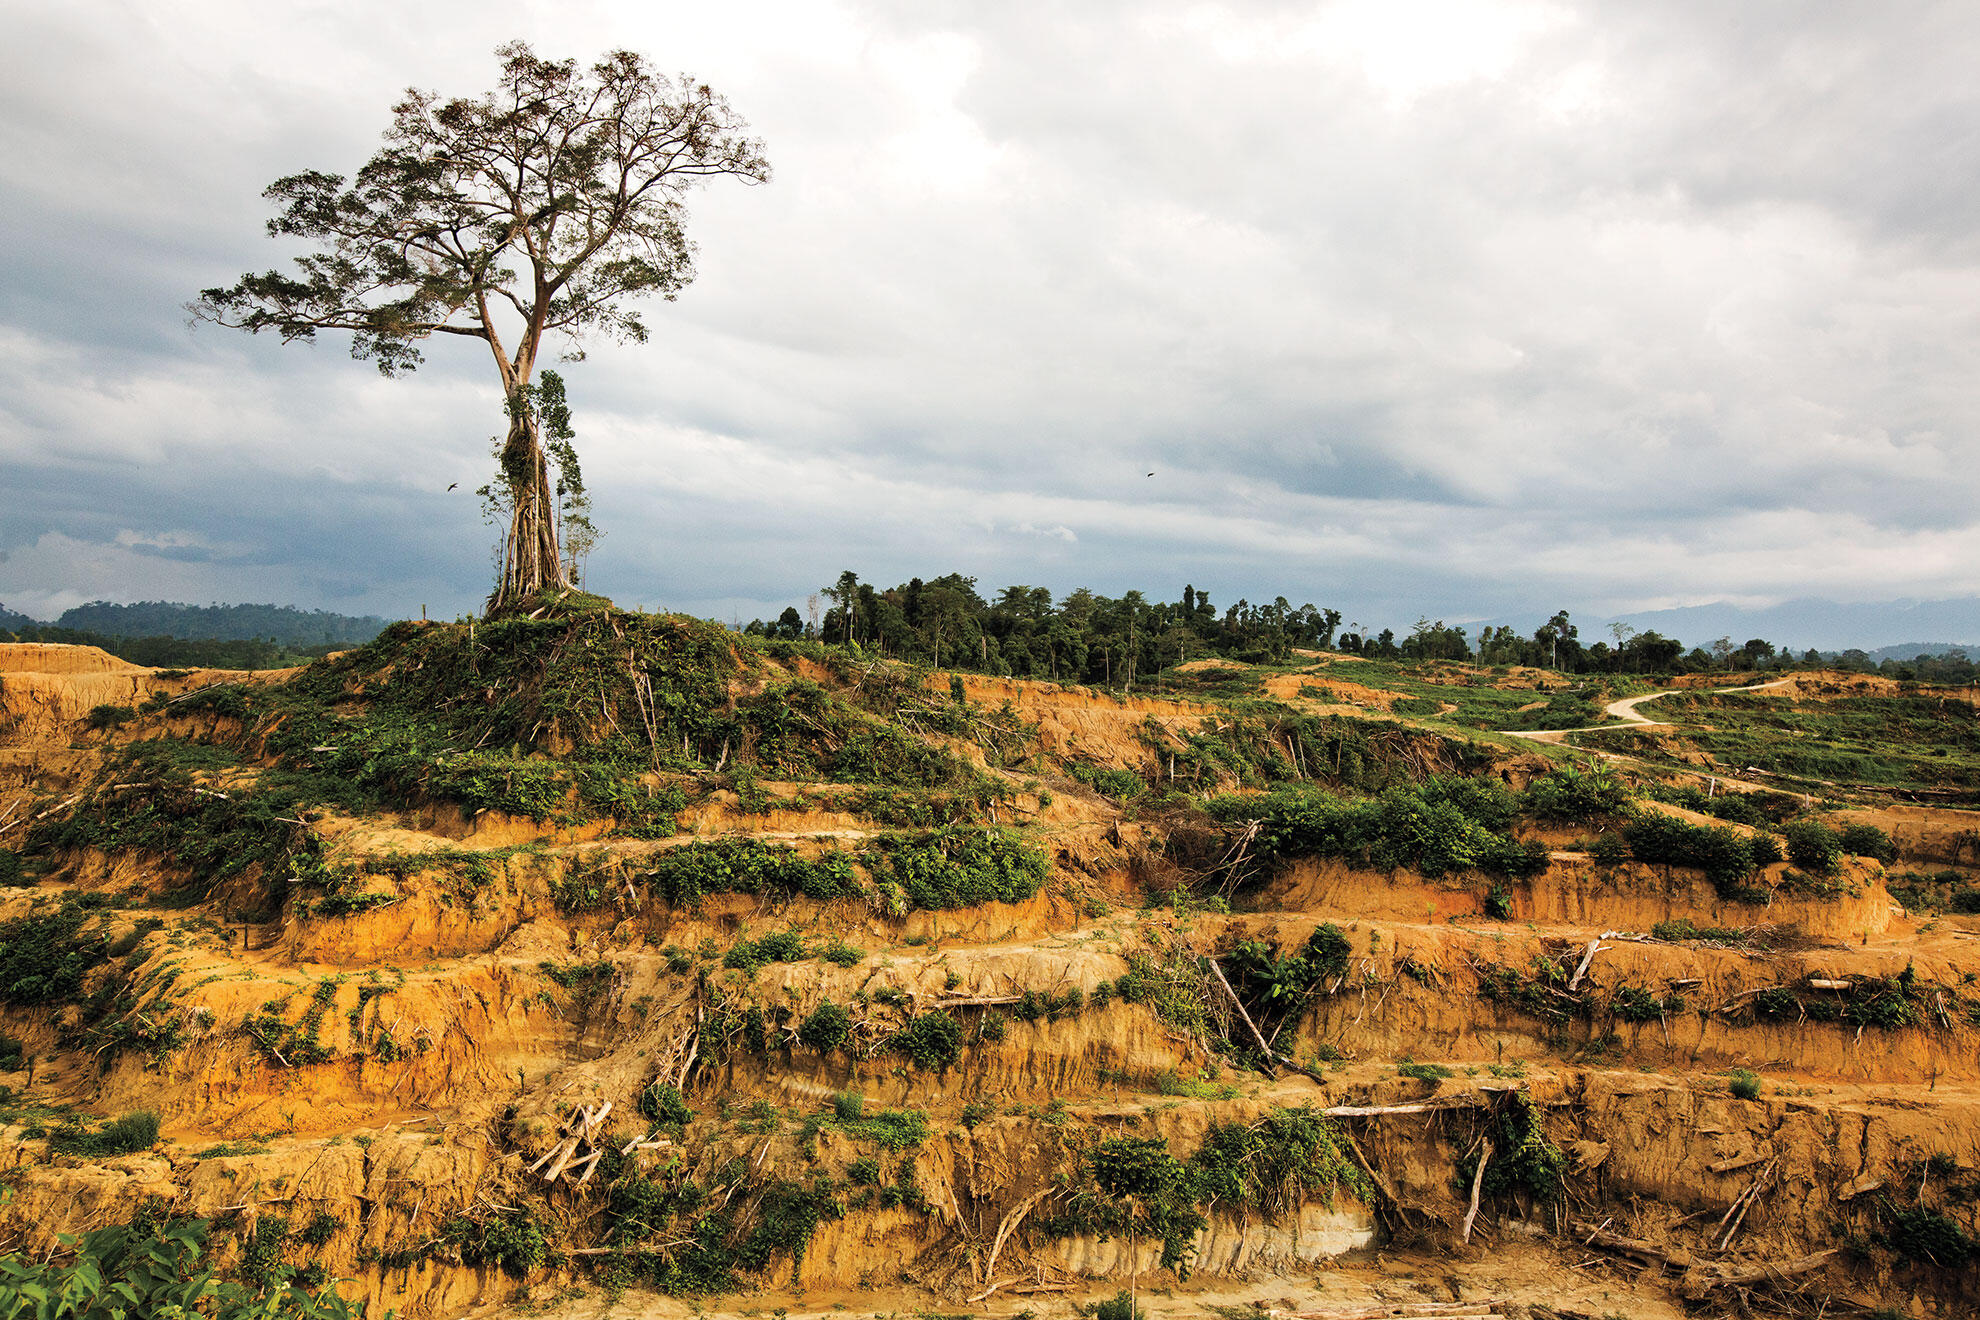 Newly cleared land in the Leuser Ecosystem attests to the weak enforcement of laws intended to protect this vital habitat. Paul Hilton